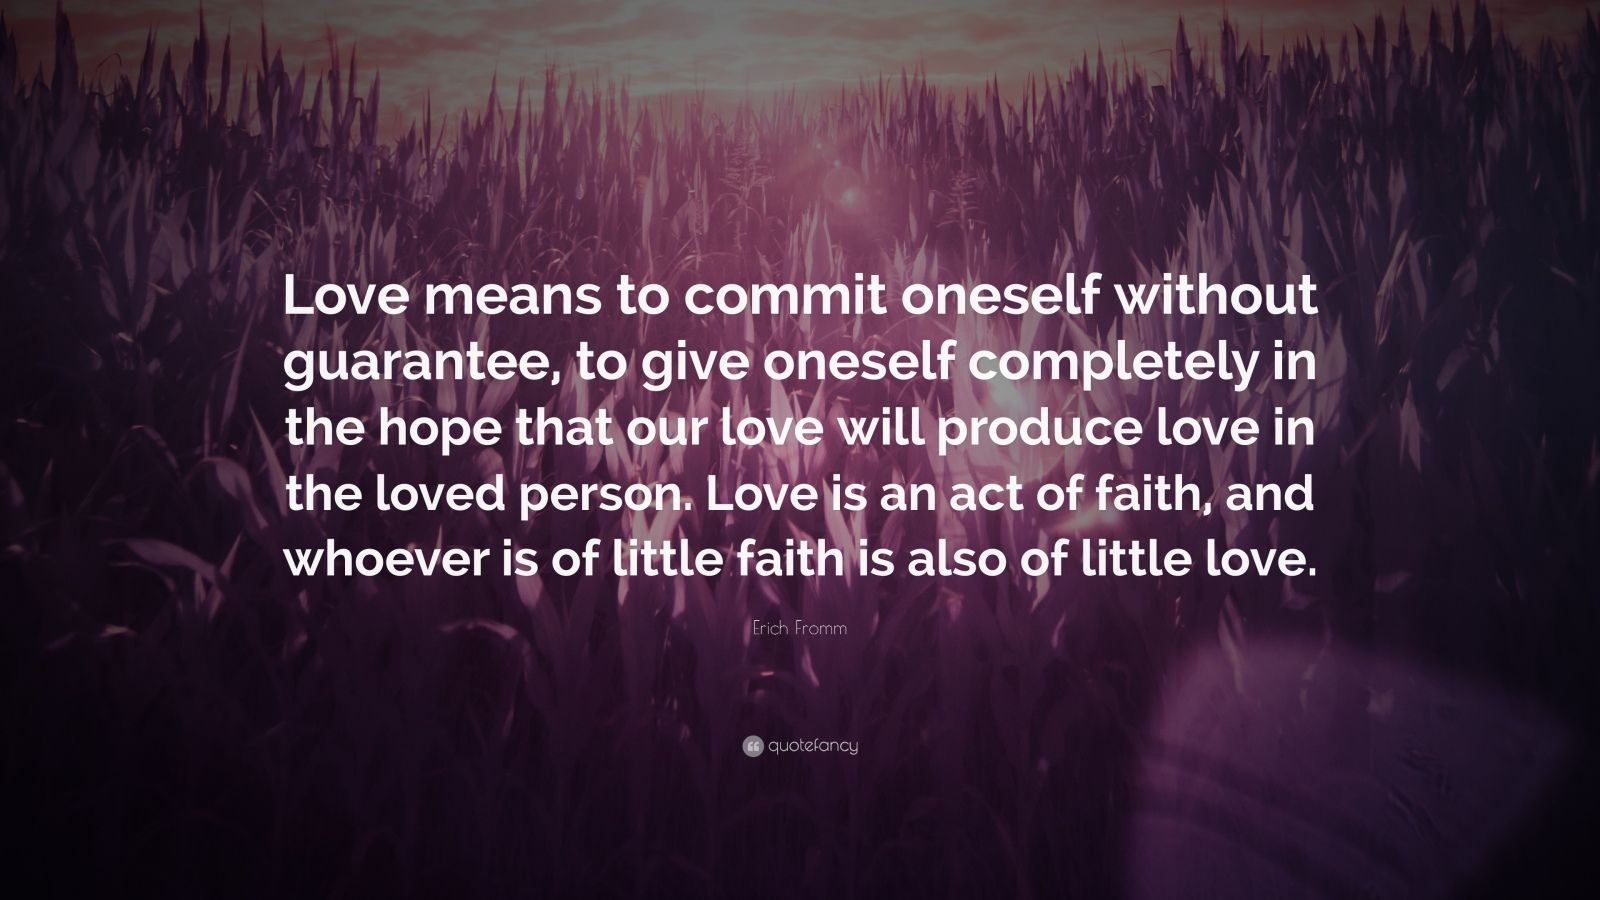 Romanceishope: Romantic Quotes (40 Wallpapers)